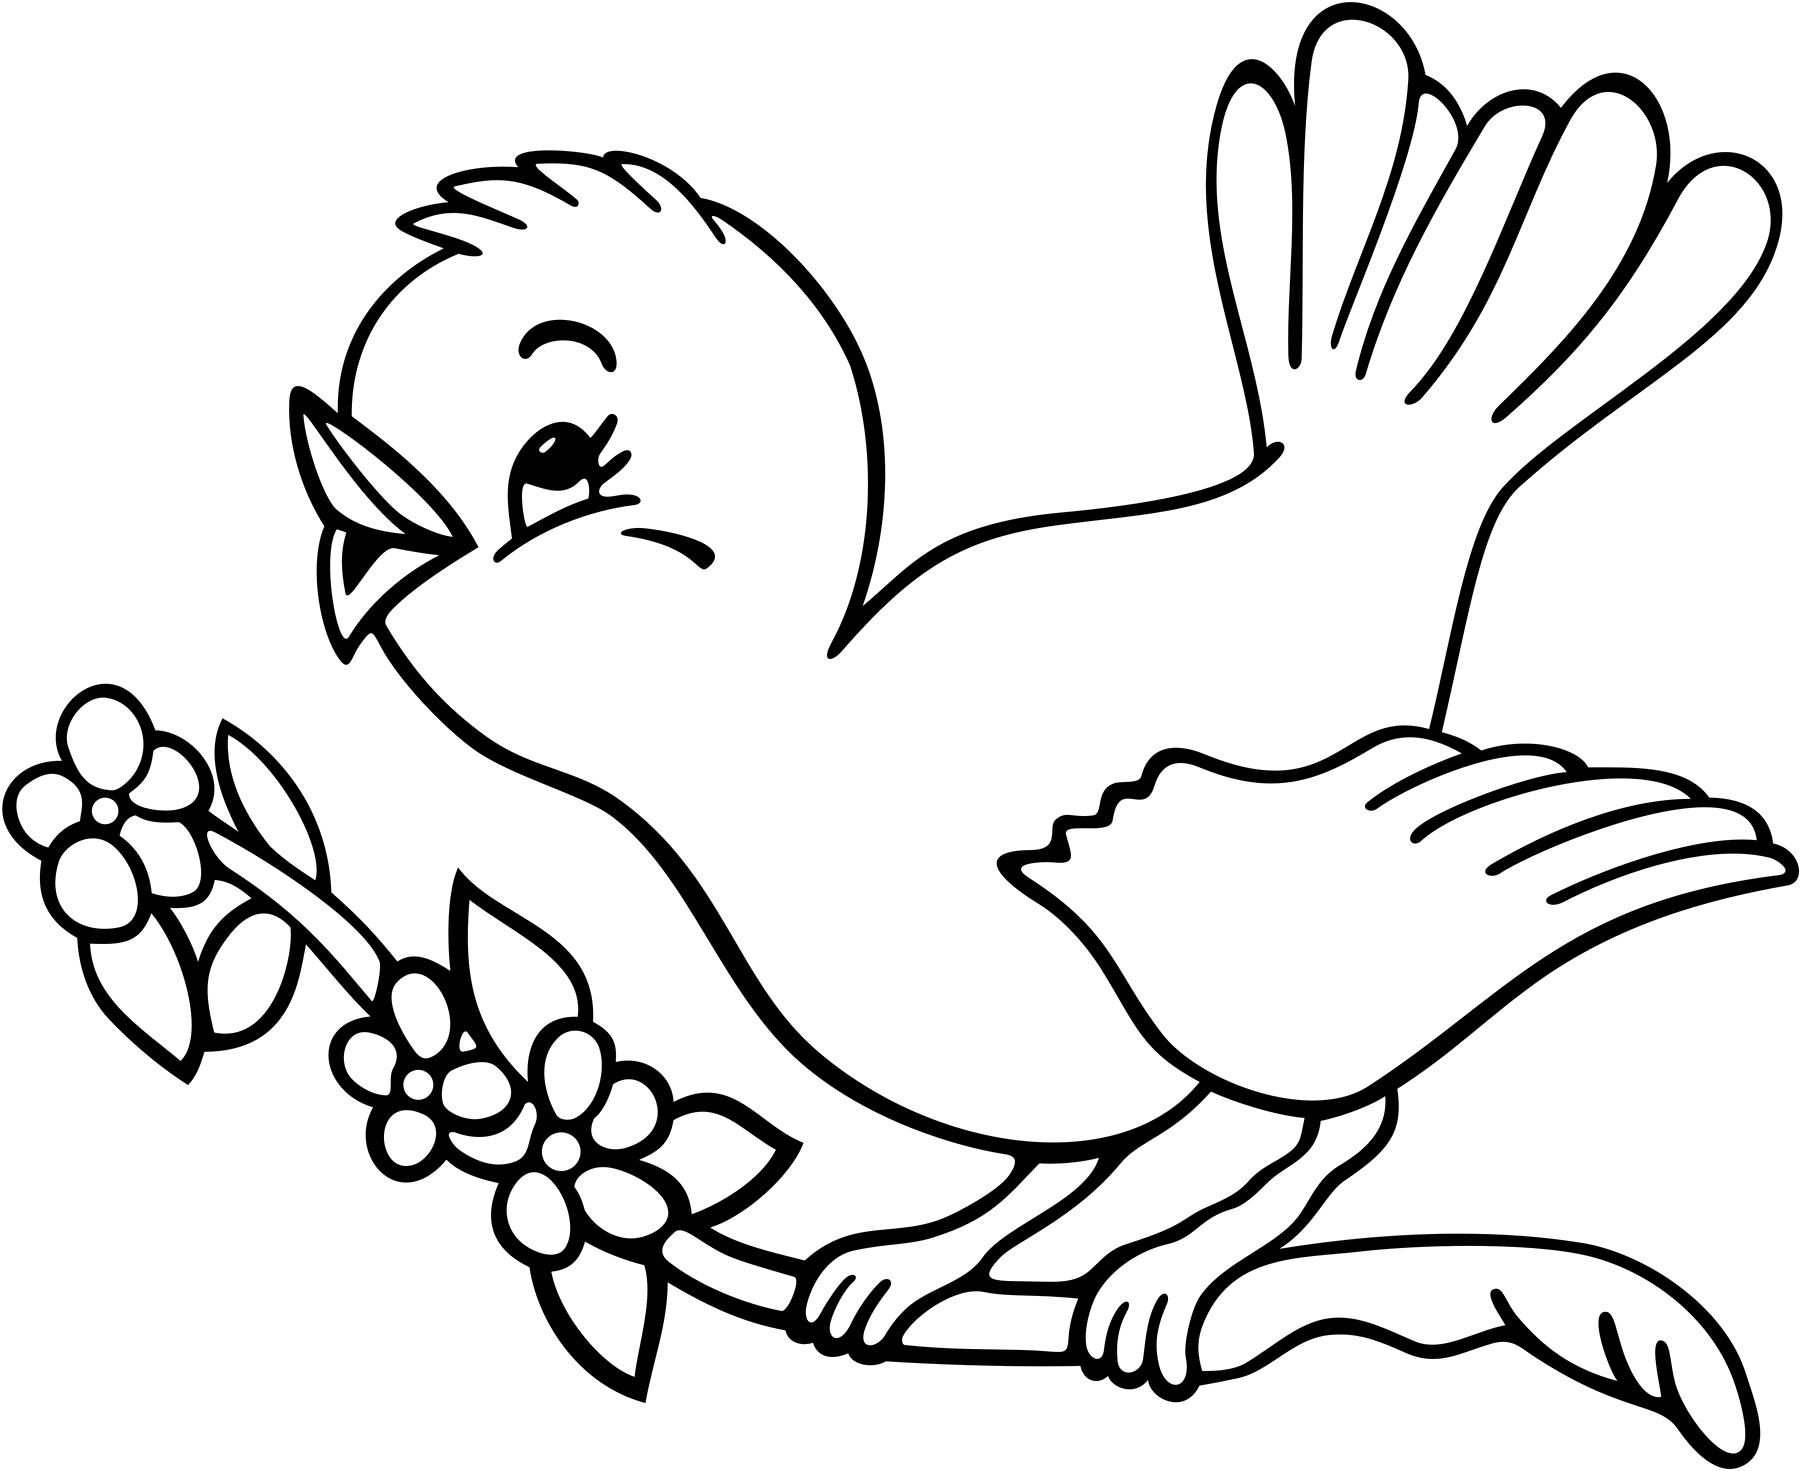 Twitter Little Birds Coloring Pages Bird Coloring Pages Bird Drawings Coloring Pages